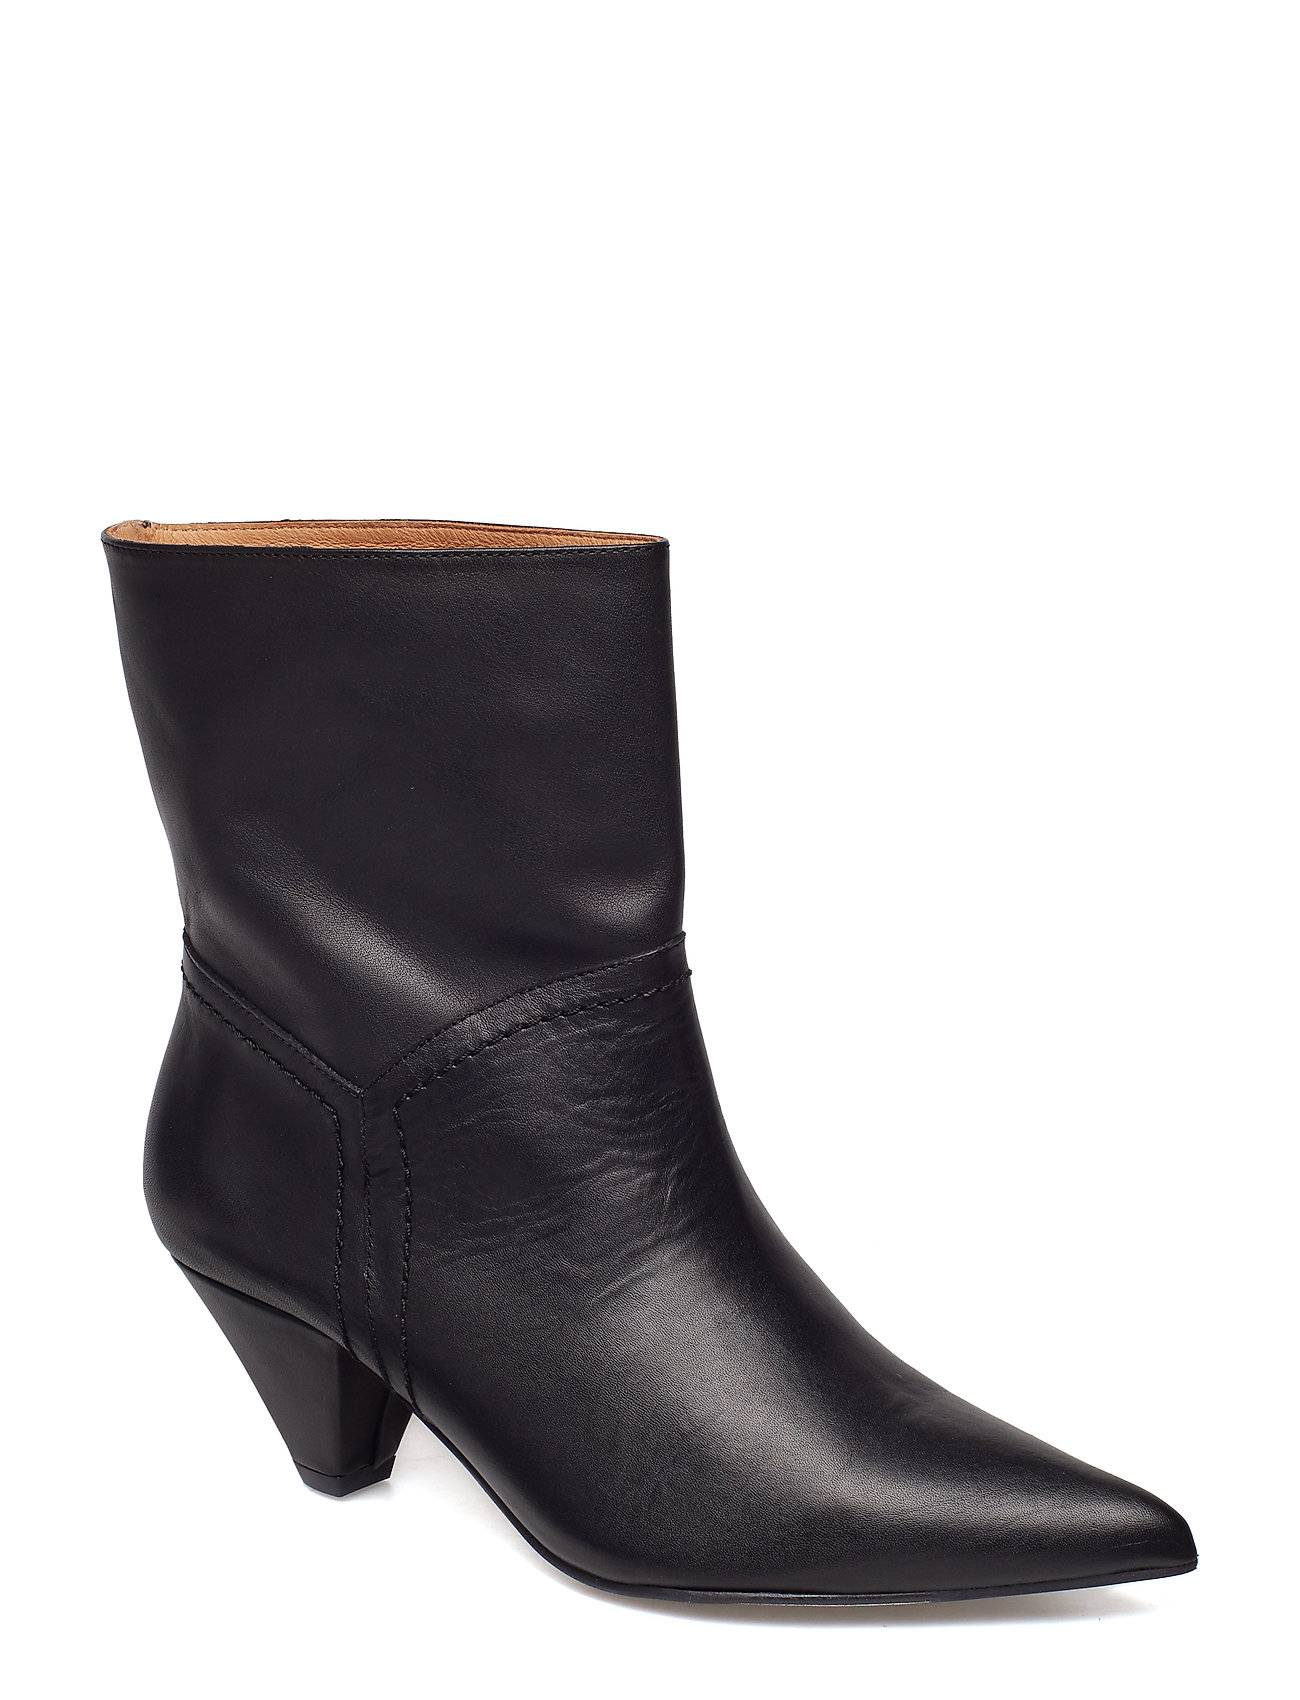 Henry Kole Selena Shoes Boots Ankle Boots Ankle Boots With Heel Musta Henry Kole